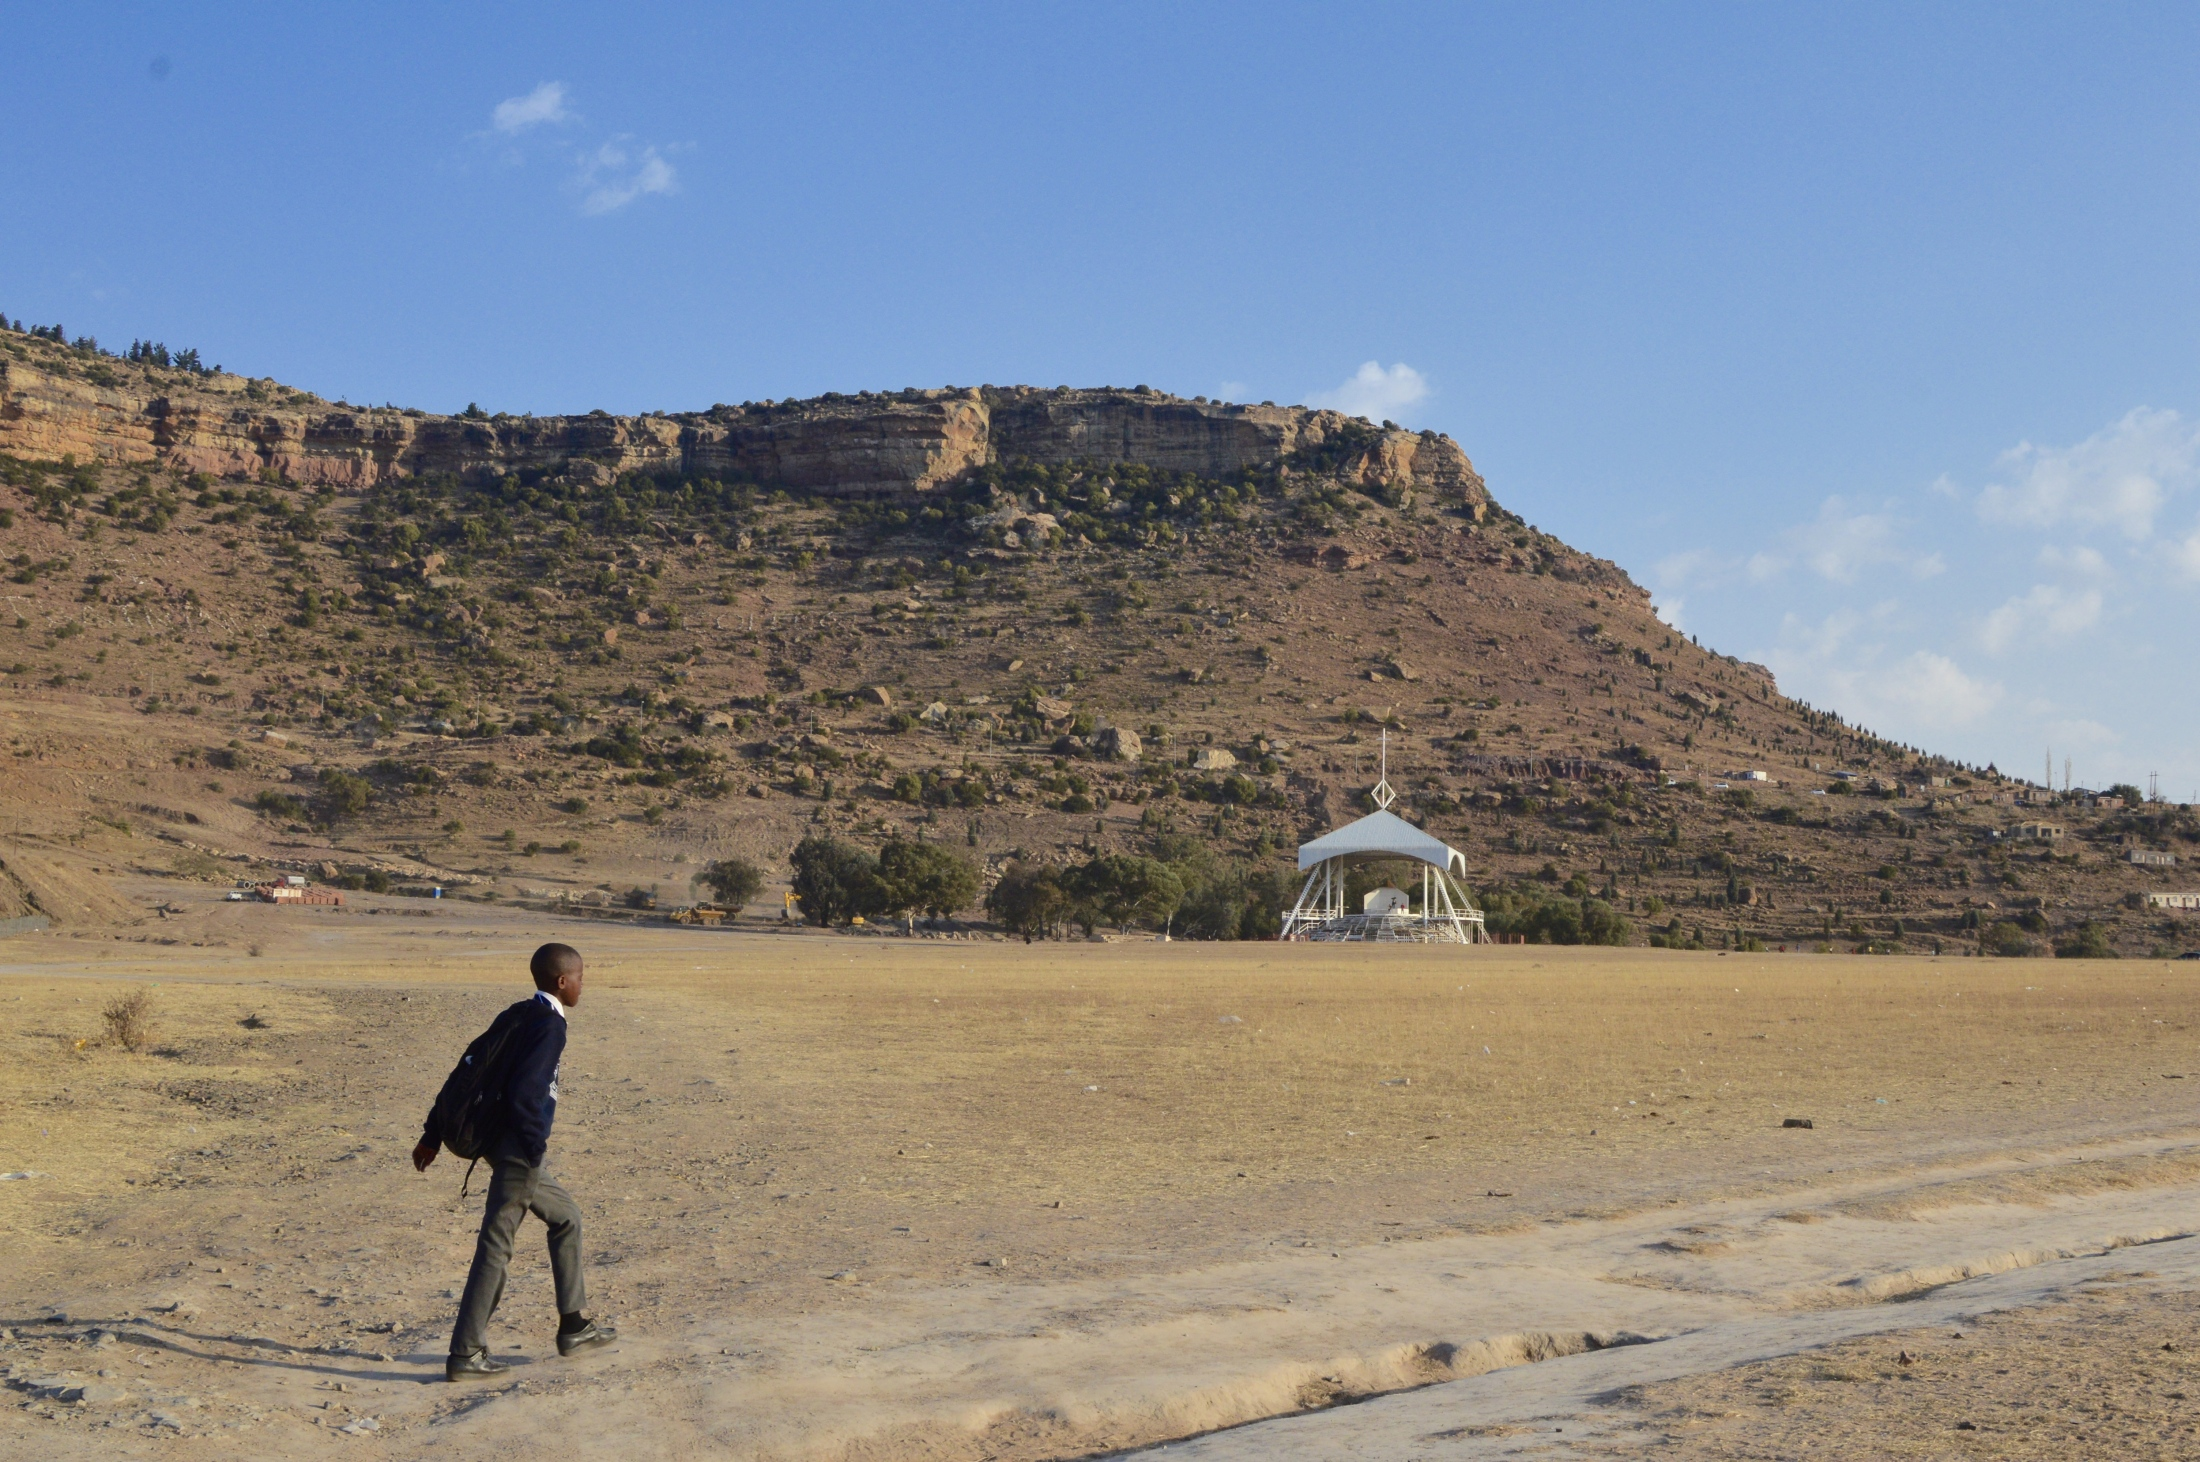 A shoolboy walks across a field where Pope John Paul II celebrated a mass during his two-day visit to the country in 1988, Maseru, Lesotho, July 2017